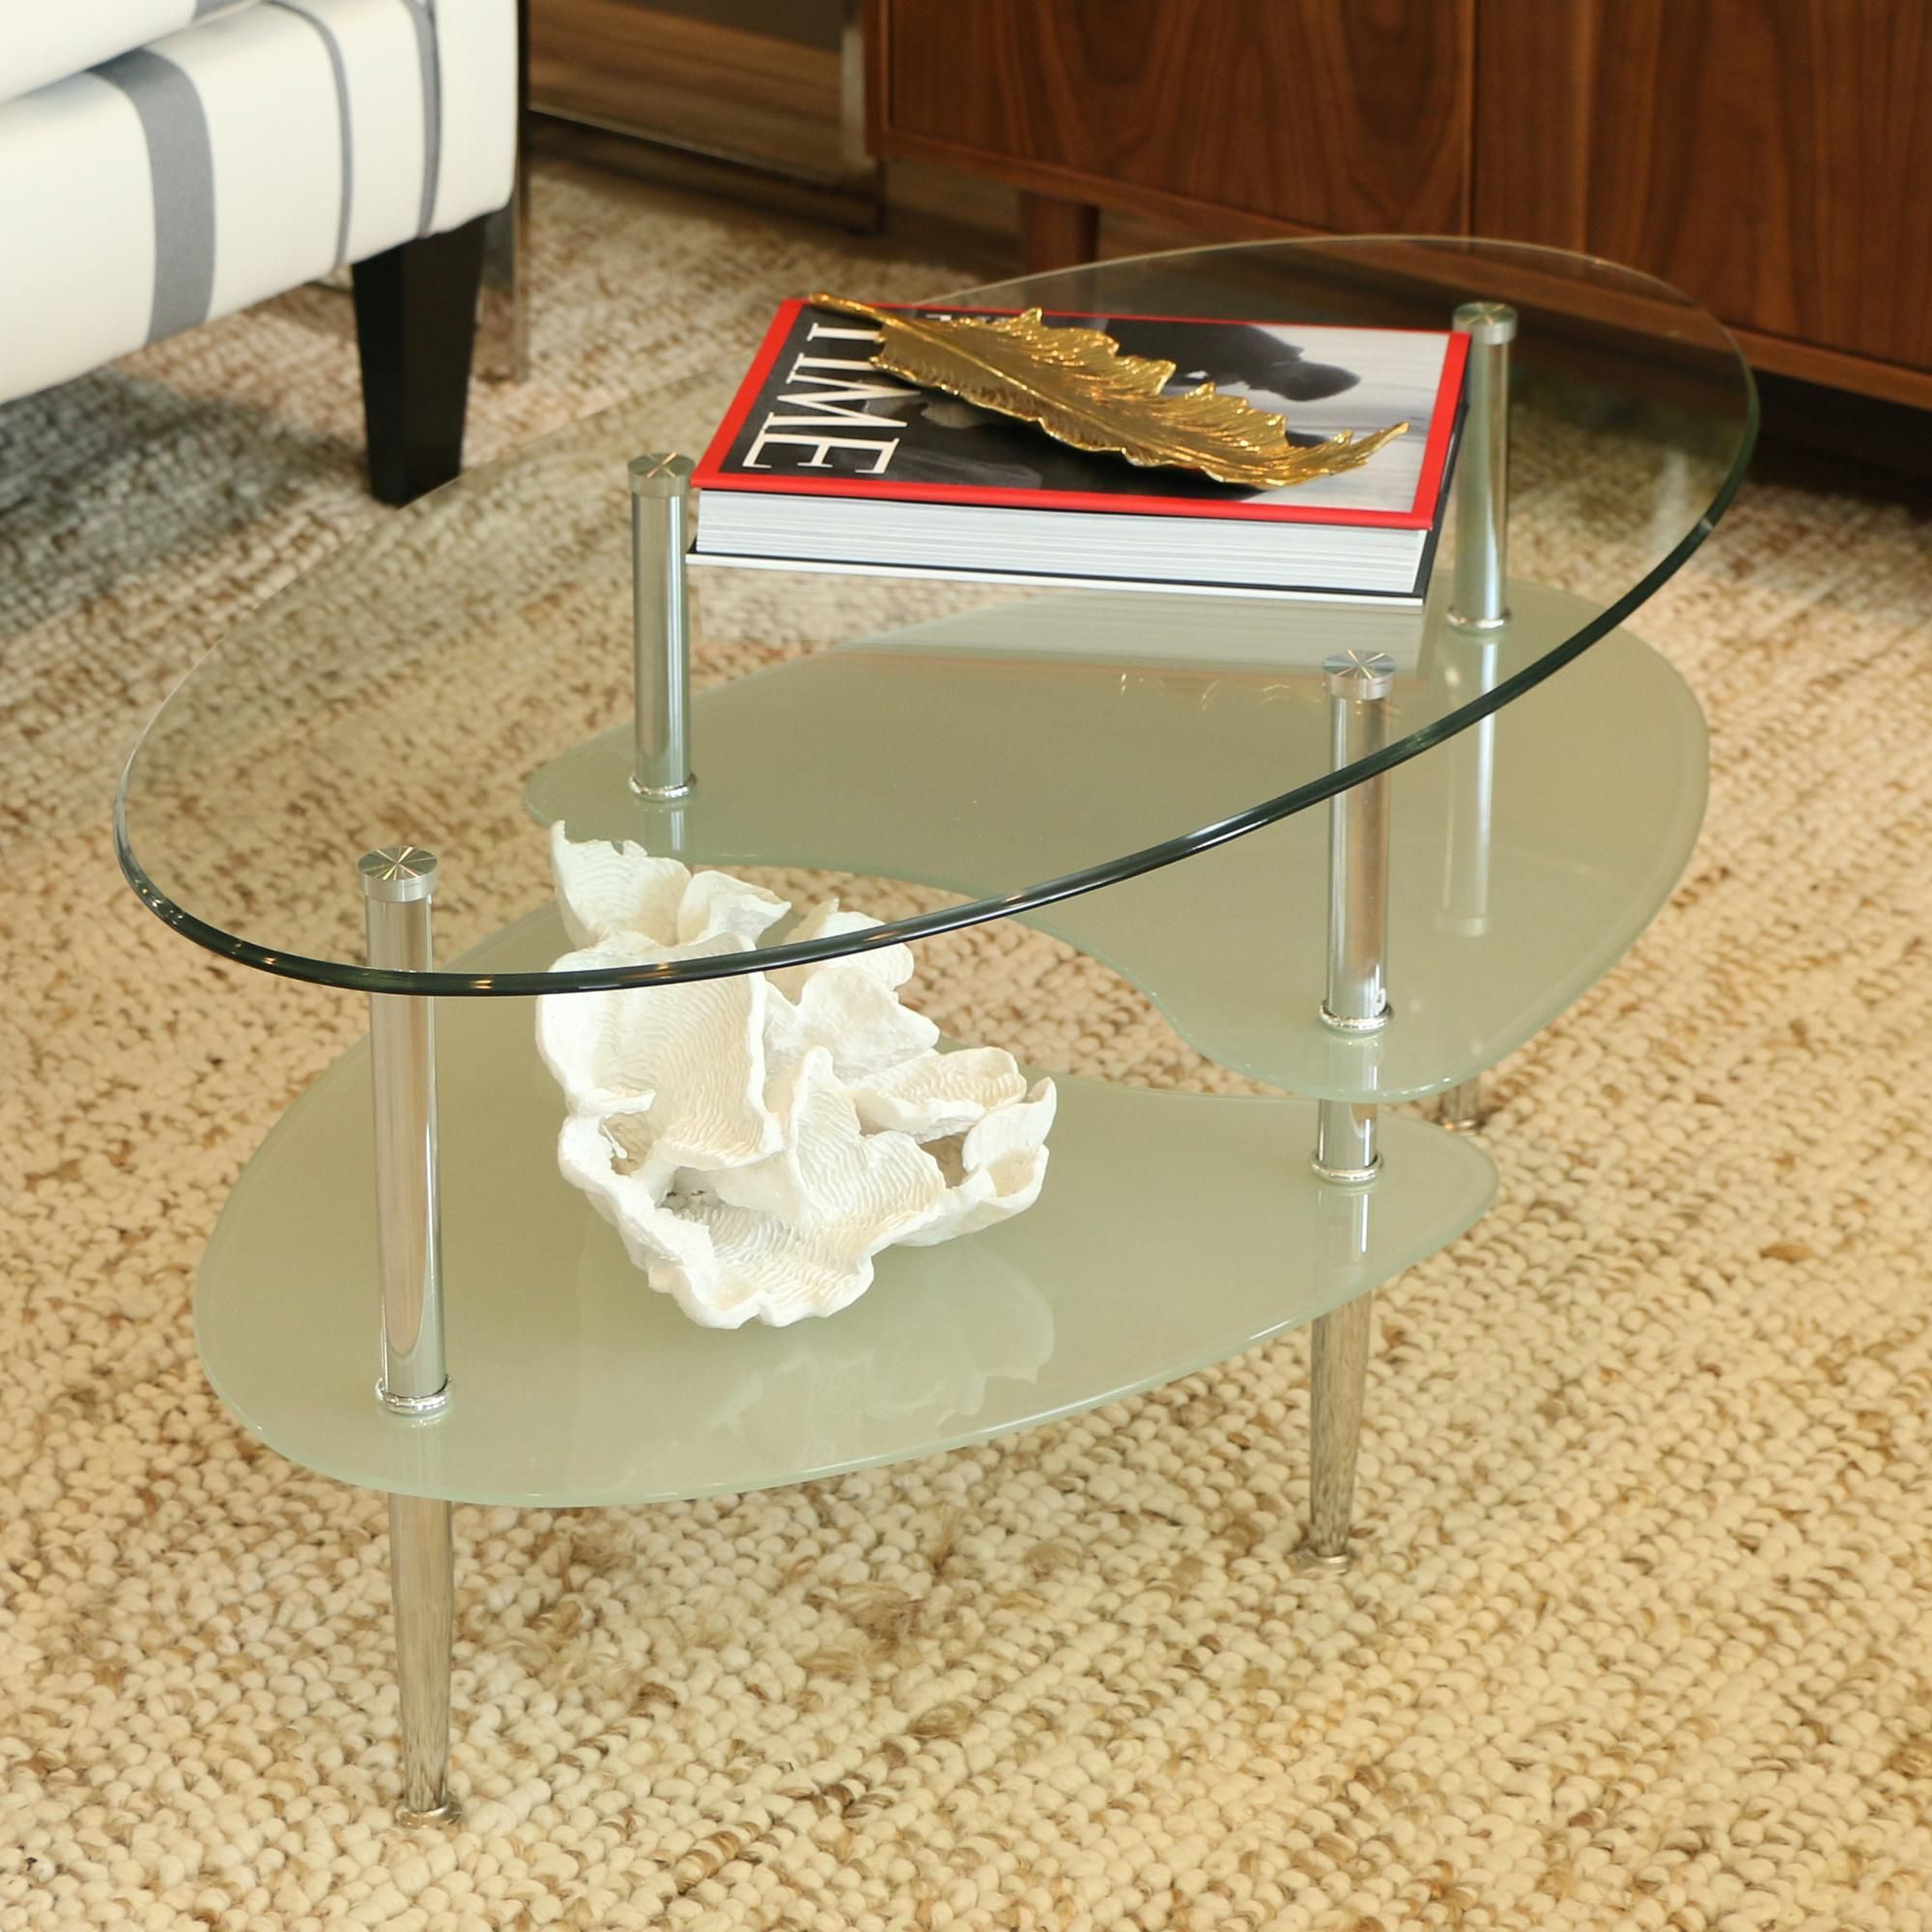 Amazon Com Walker Edison 38 In Wave Oval Coffee Table Glass Coffe Table Silberner Couchtisch Couchtisch Glas Coole Couchtische [ 2000 x 2000 Pixel ]